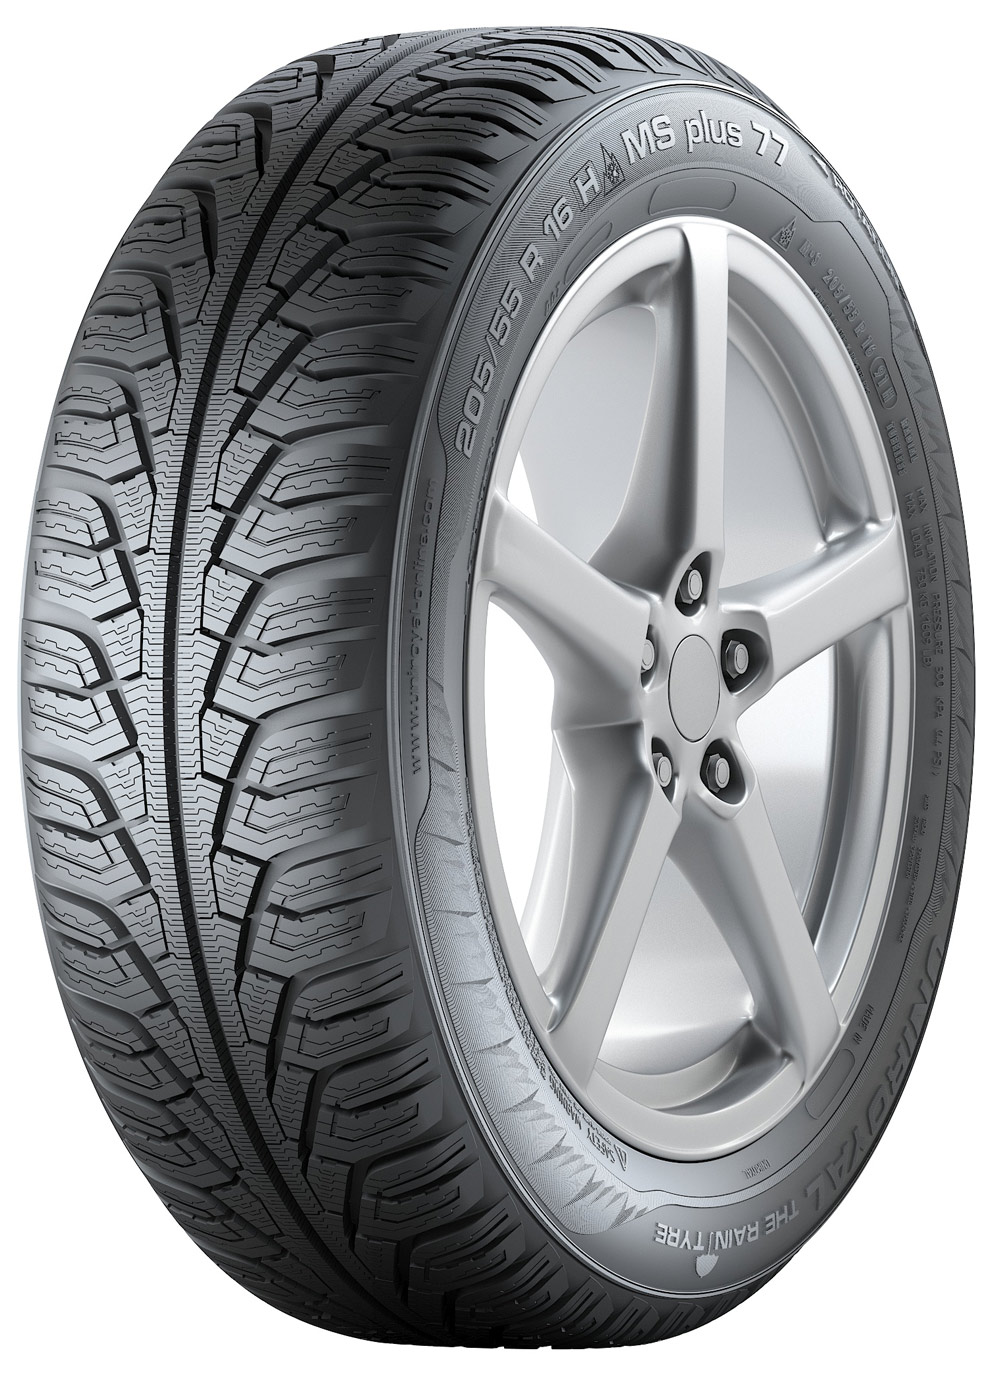 UNIROYAL MS PLUS 77 165/65 R 14